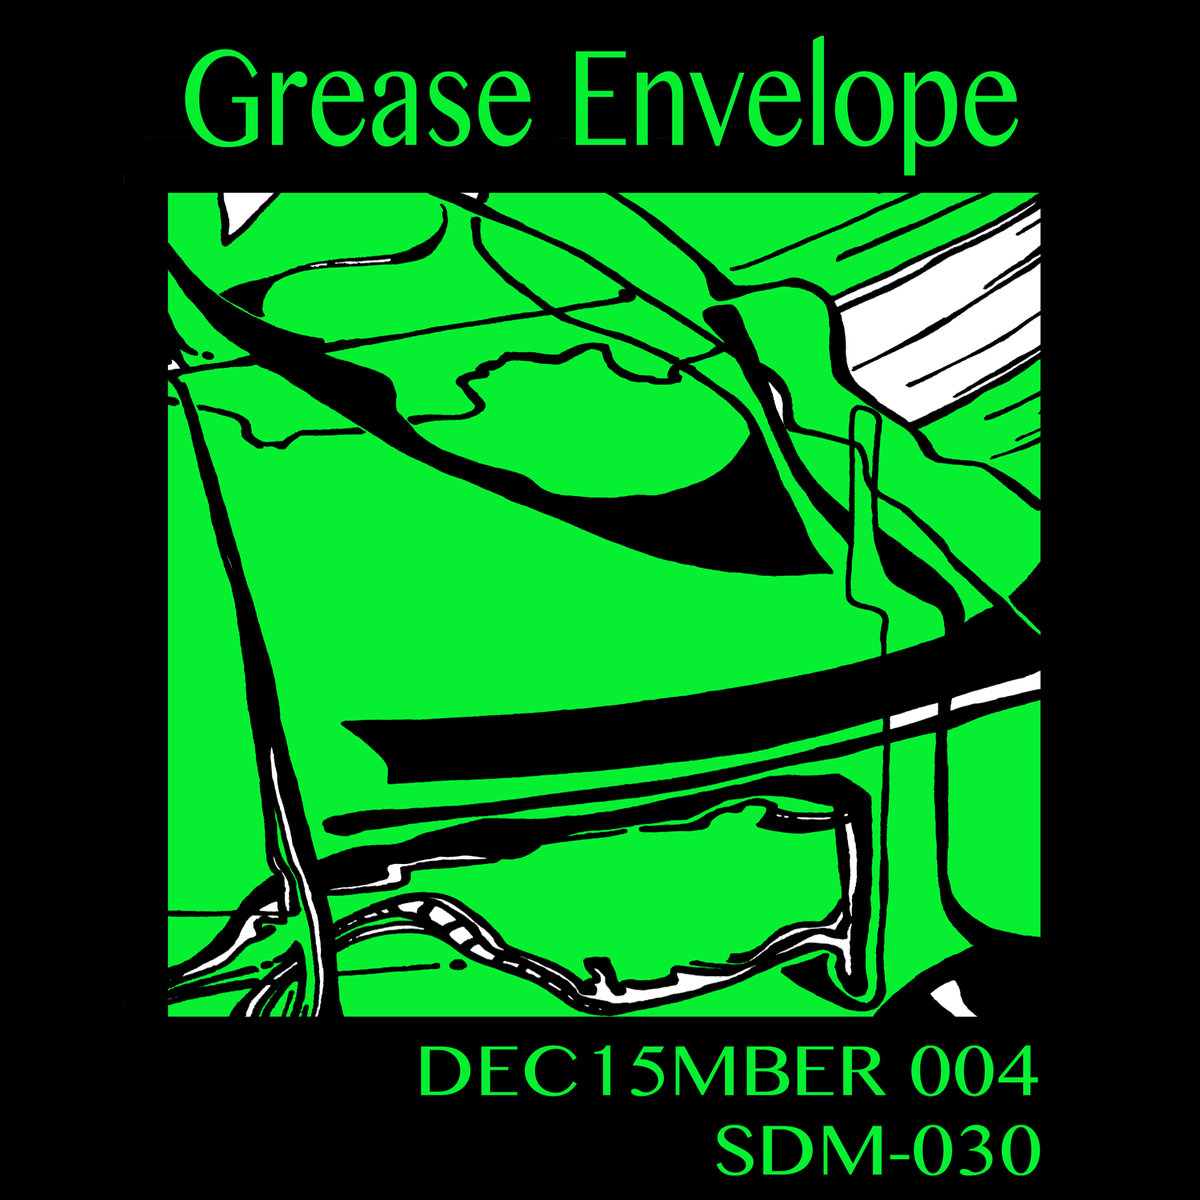 DEC15MBER 004: Grease Envelope - Initial Public Release     SDM-030